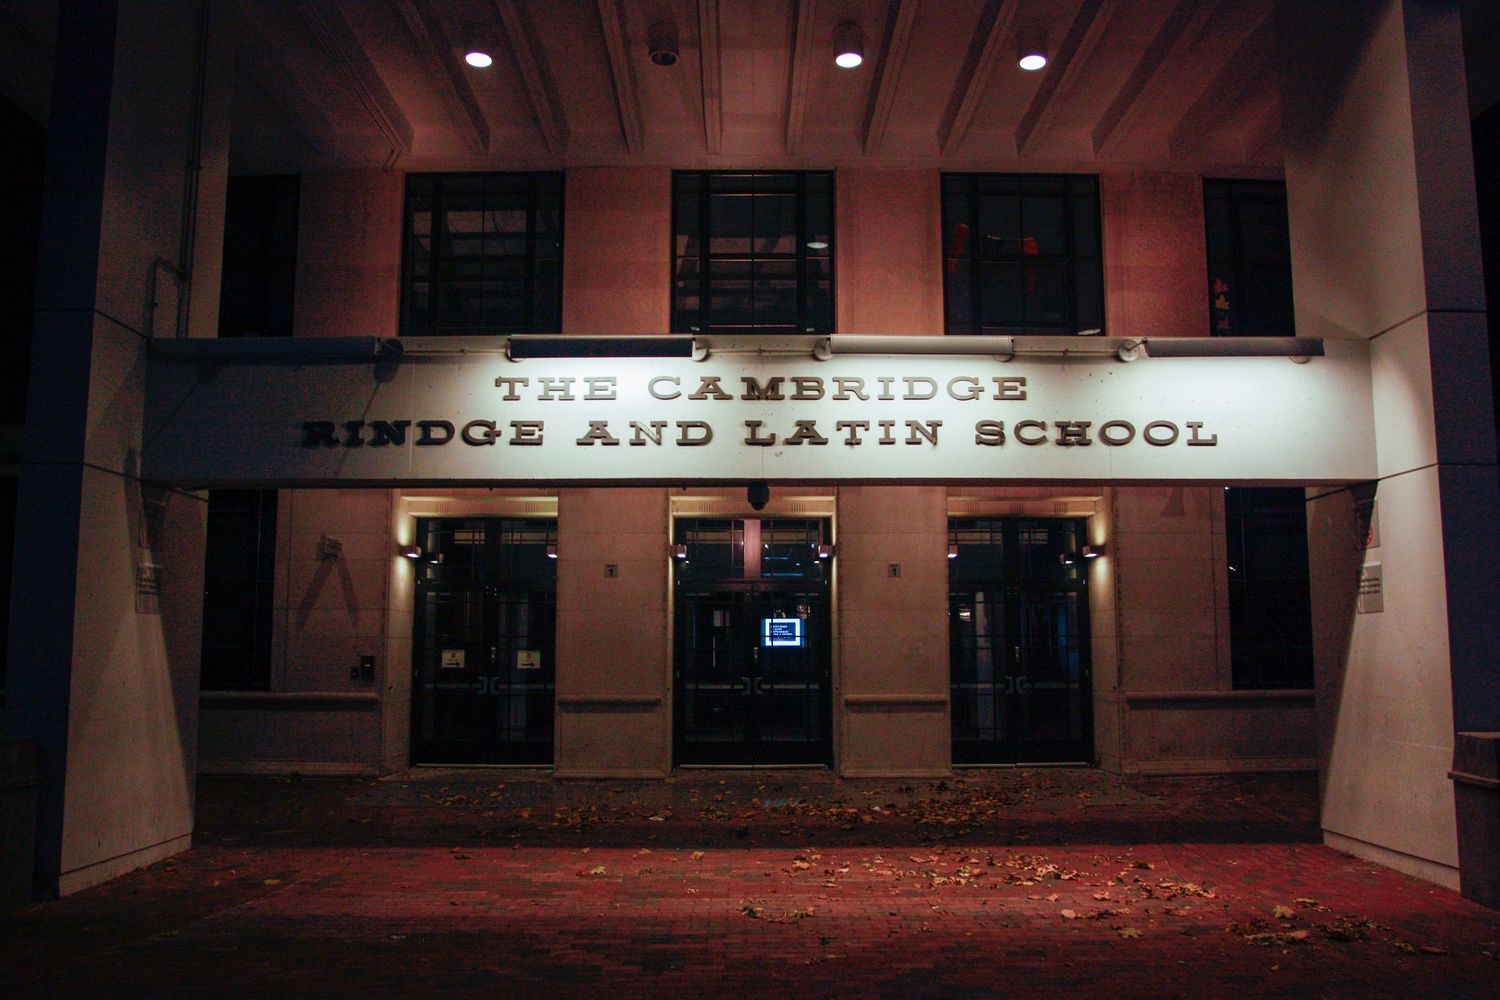 The Cambridge Rindge and Latin School is the only traditional public high school in the Cambridge Public School district.